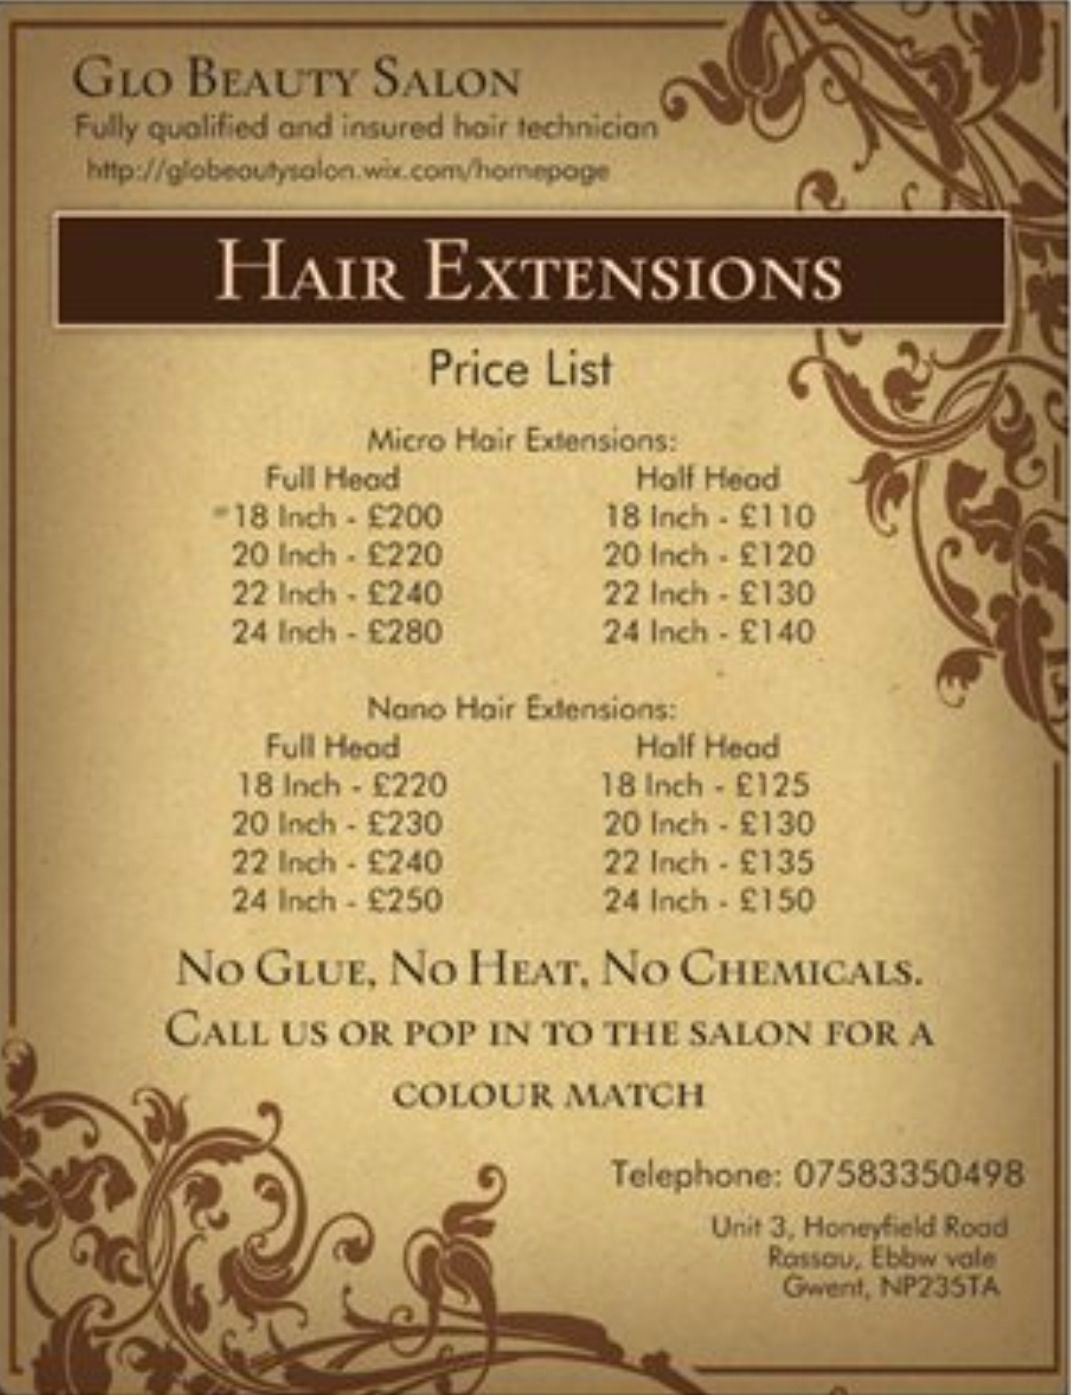 Hair Salon Price Lists Awesome Hair Extension Price List Advertising Pinterest